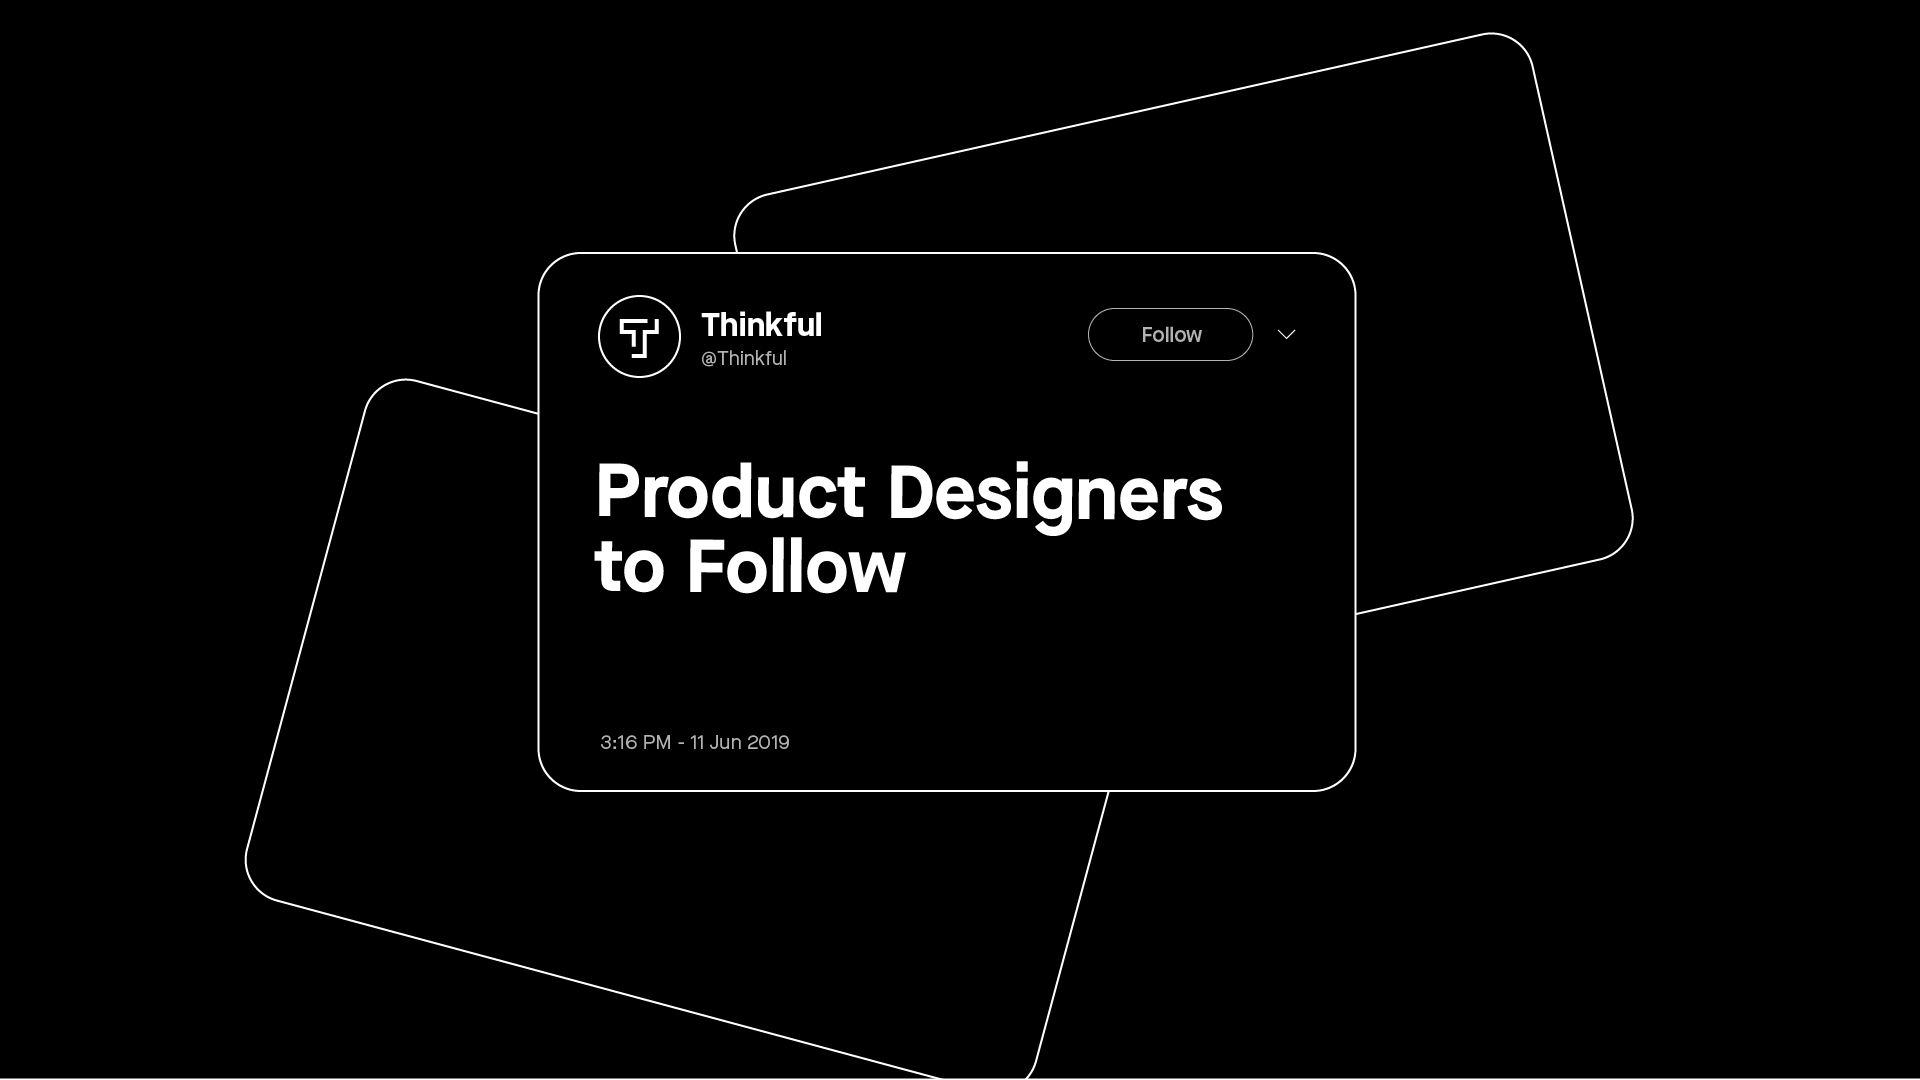 5 Product Designers to Follow